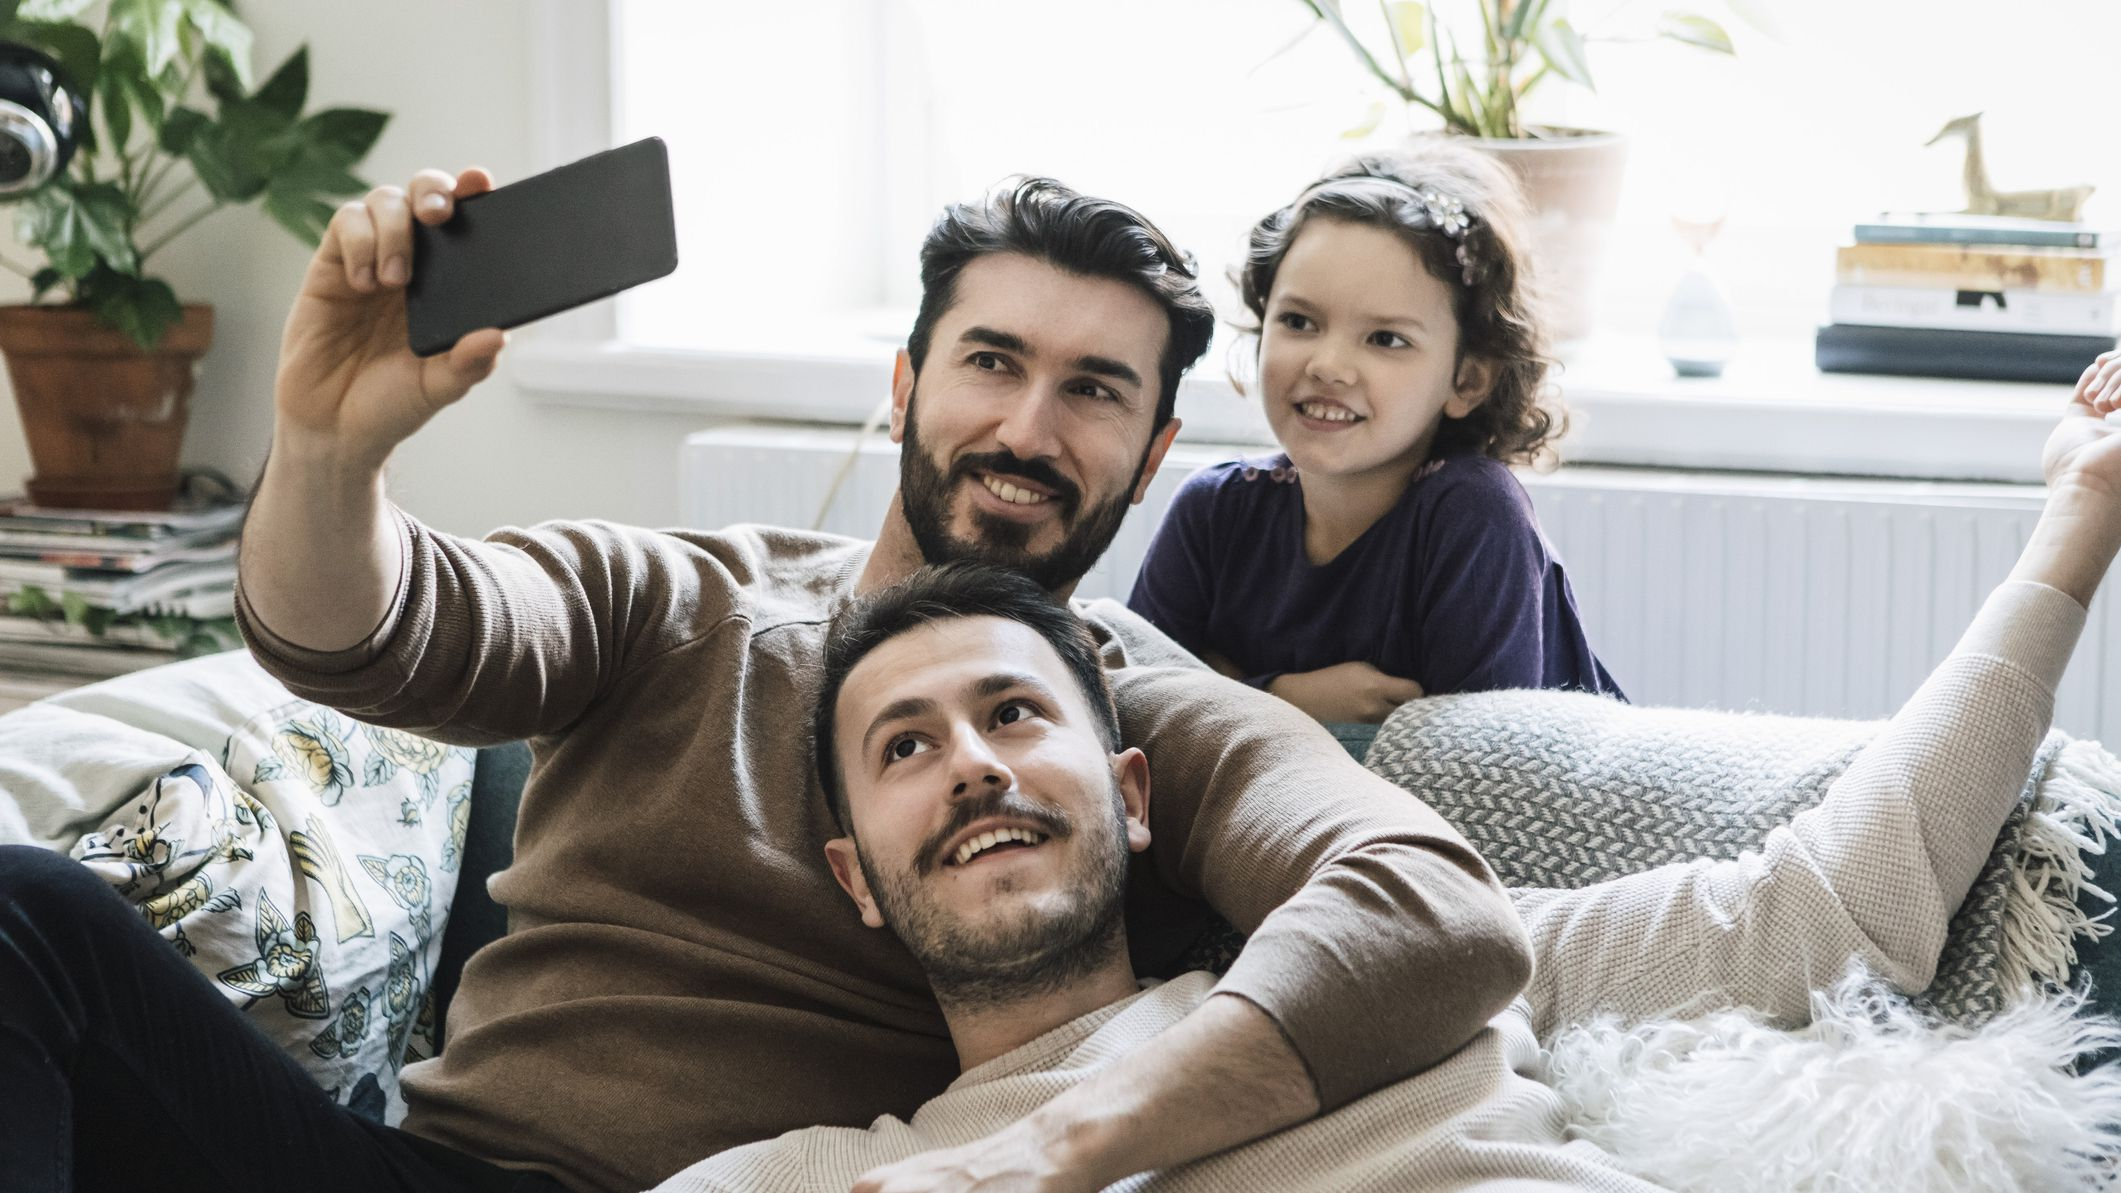 The 8 Best Family Cell Phone Plans of 2019